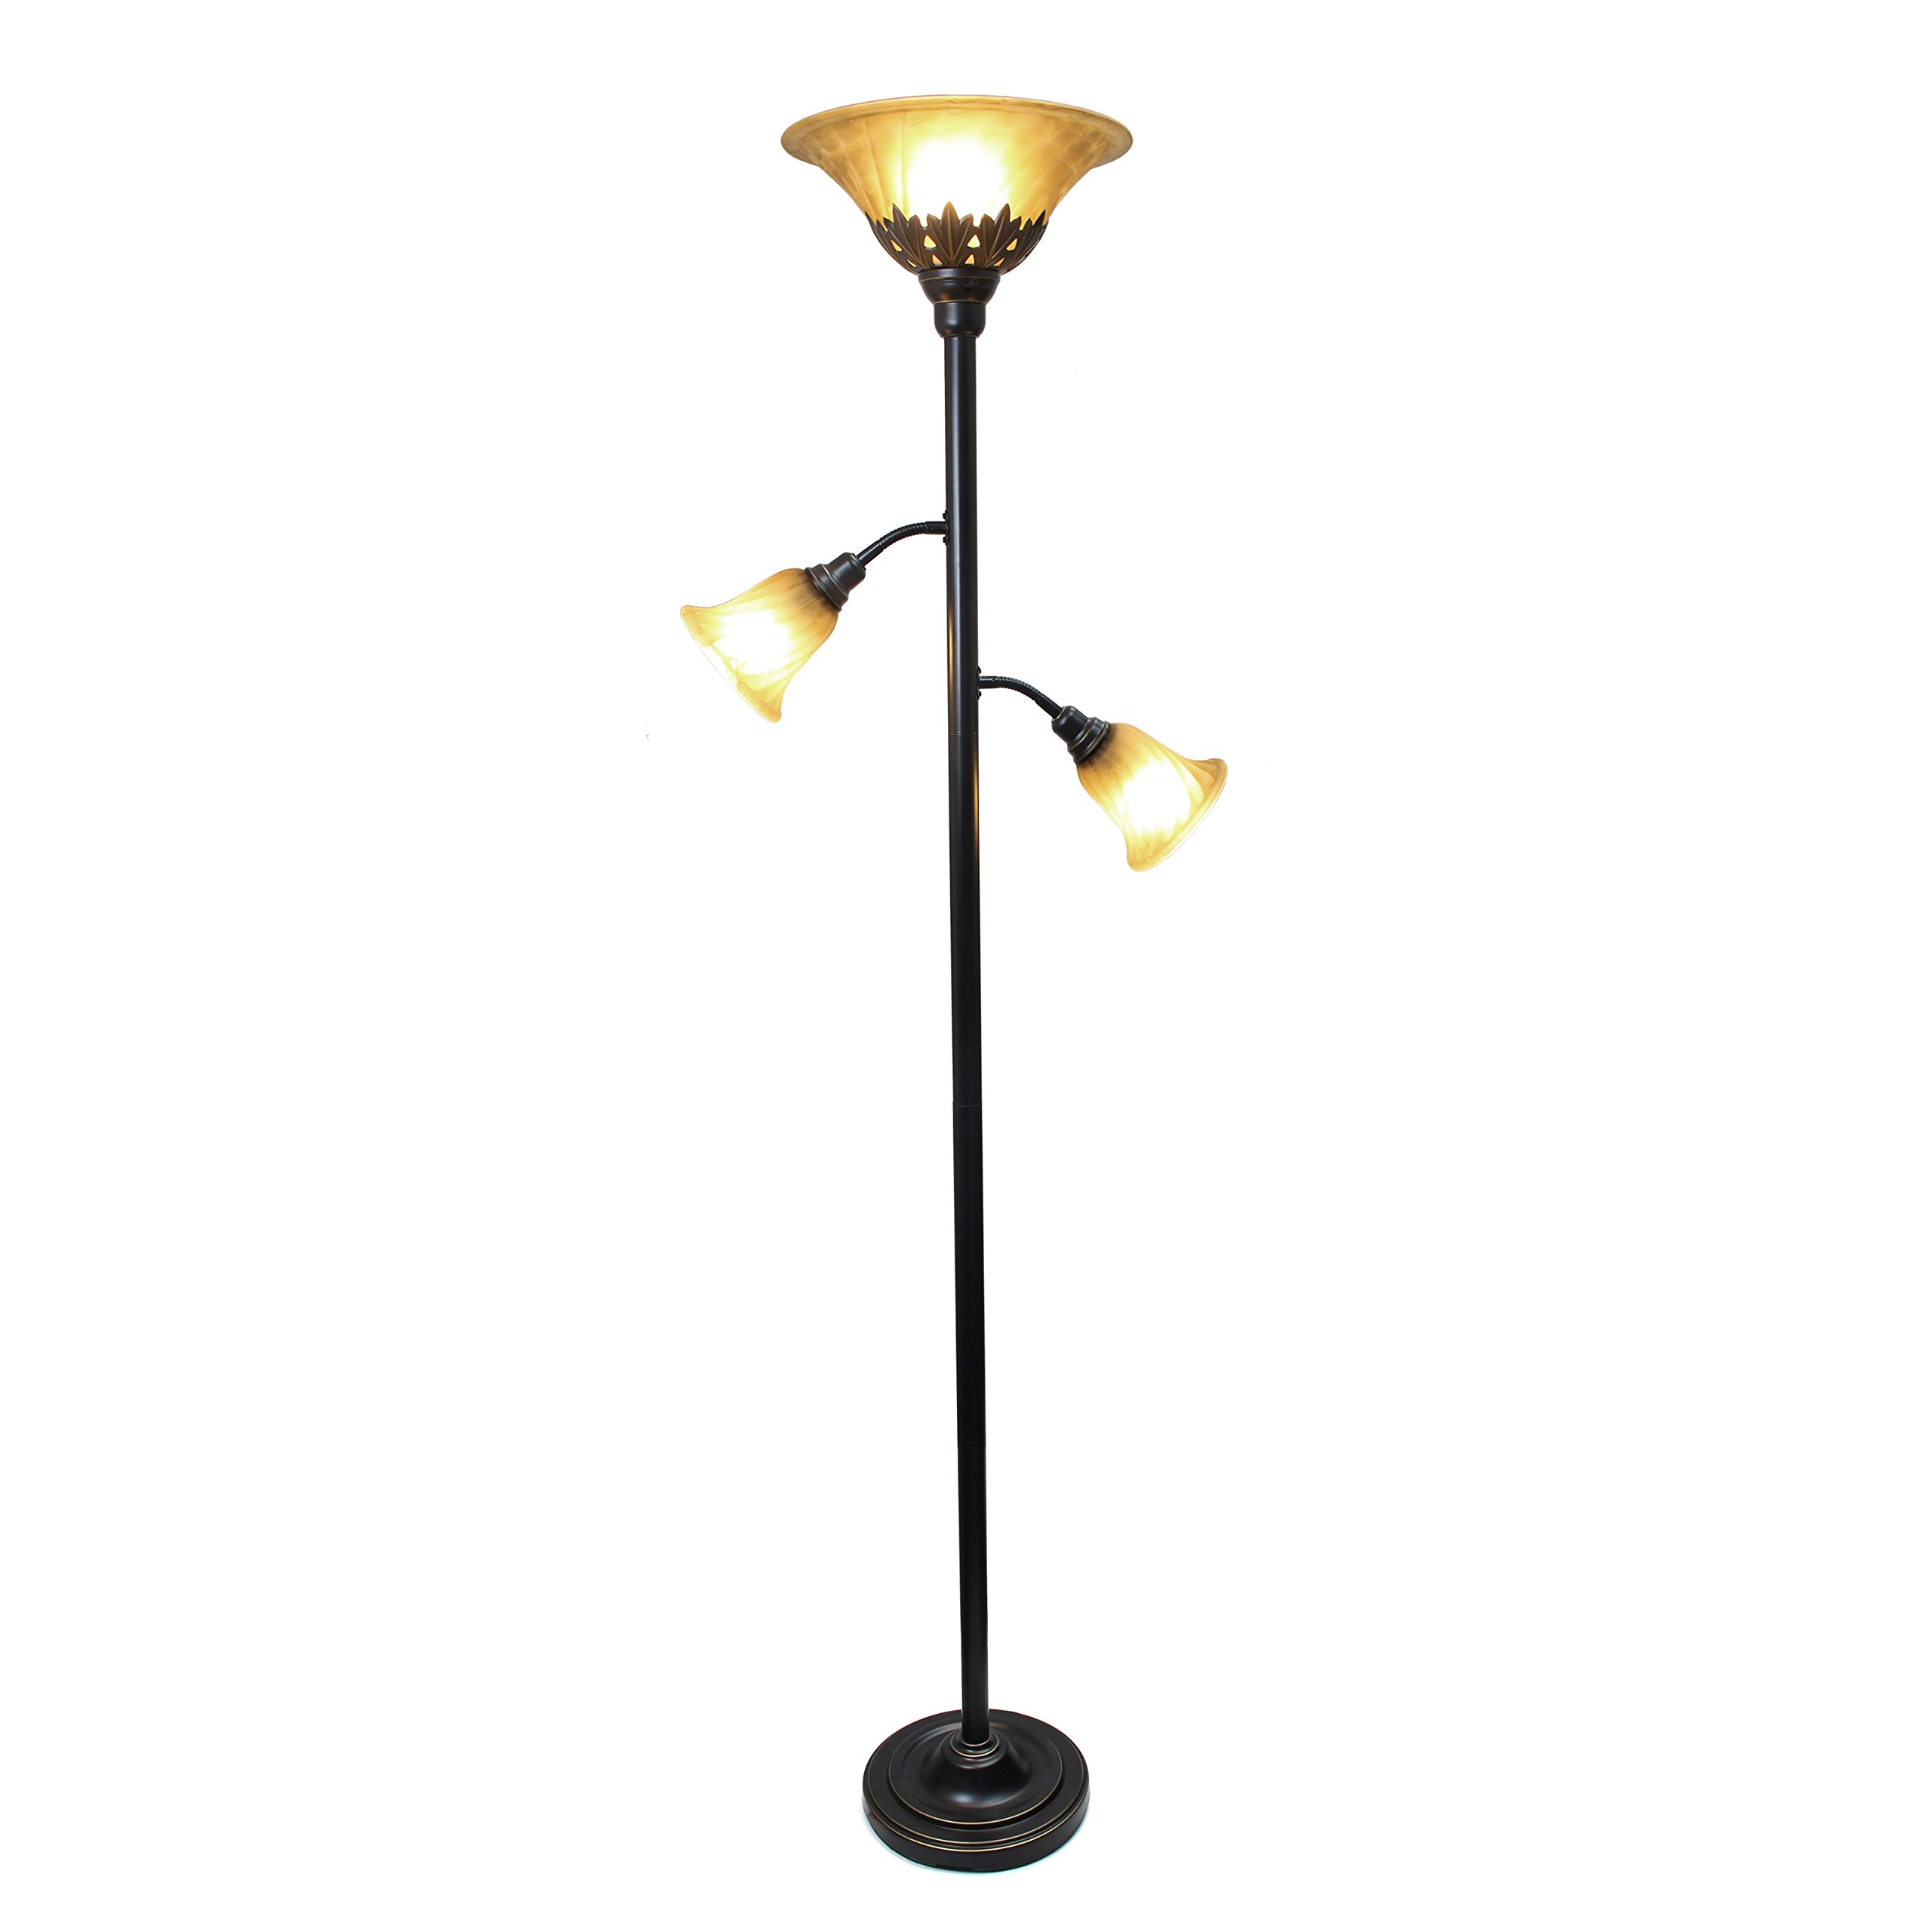 Elegant Designs LF2002-RBZ 3 Light Floor Lamp with Scalloped Glass Shades, 3.9, Restoration Bronze/Champagne by Elegant Designs